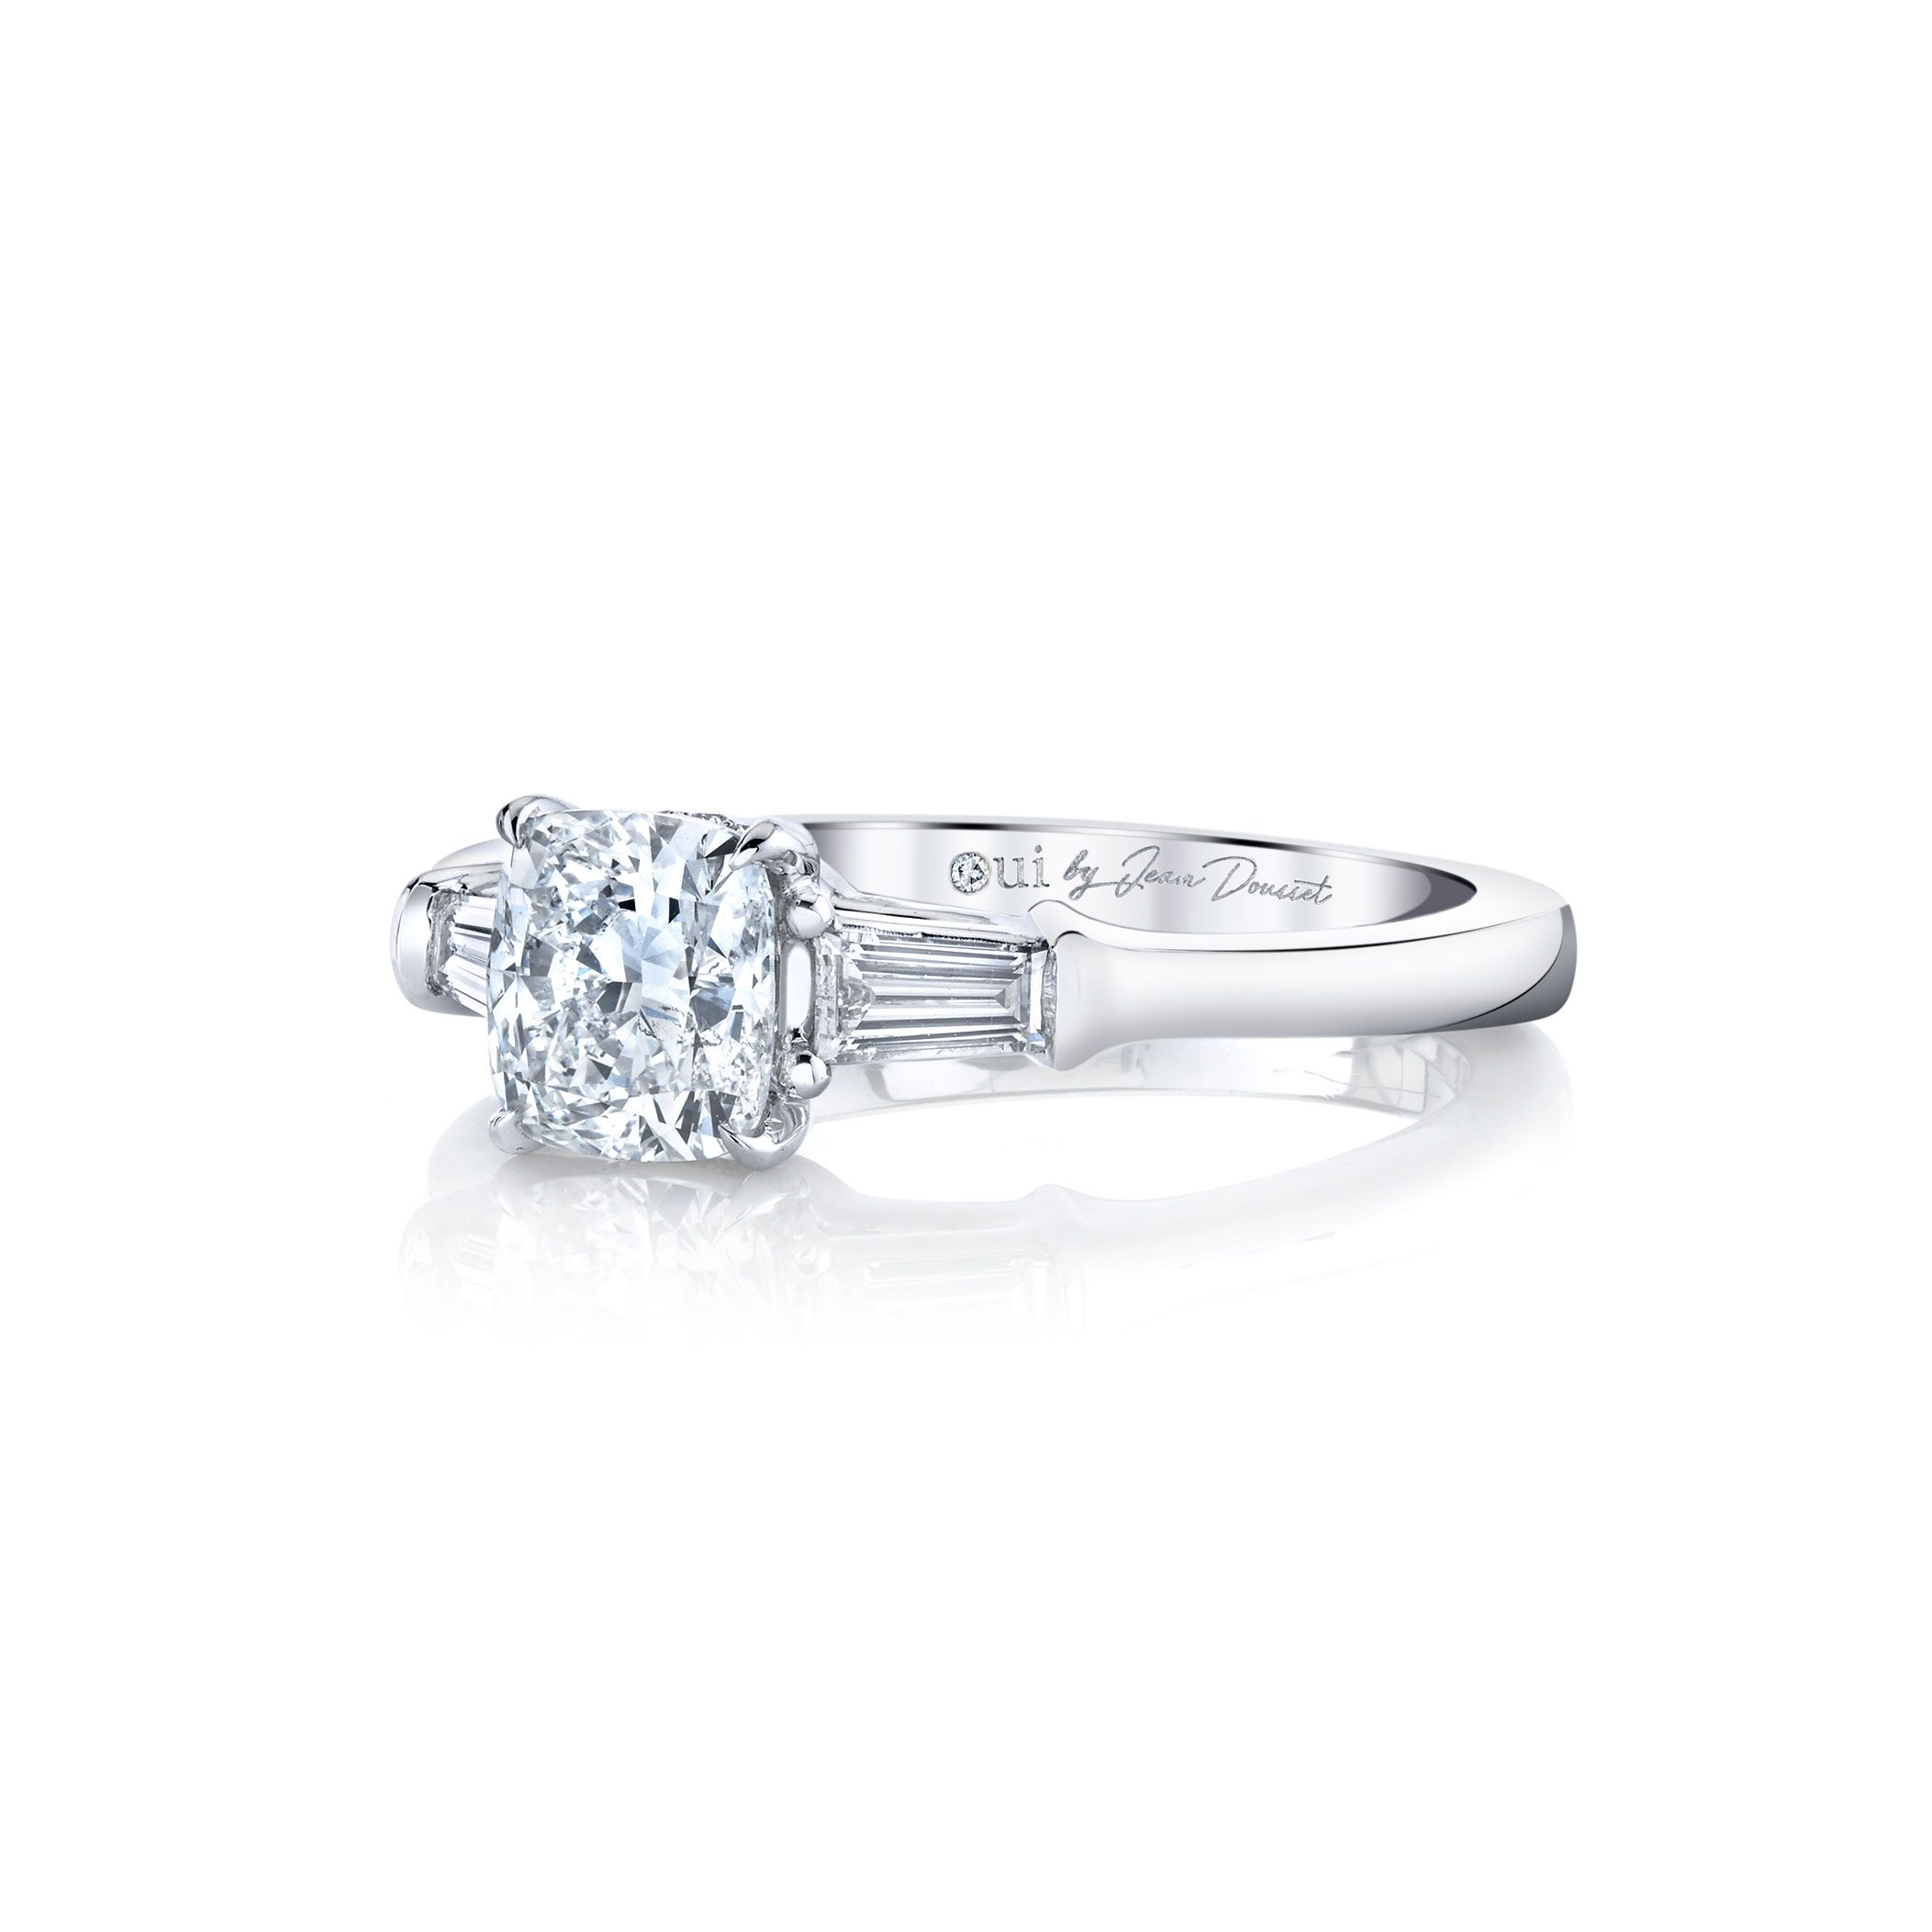 Claire Cushion Three Stone Engagement Ring with tapered baguette diamond side stones in 18k White Gold Side View by Oui by Jean Dousset